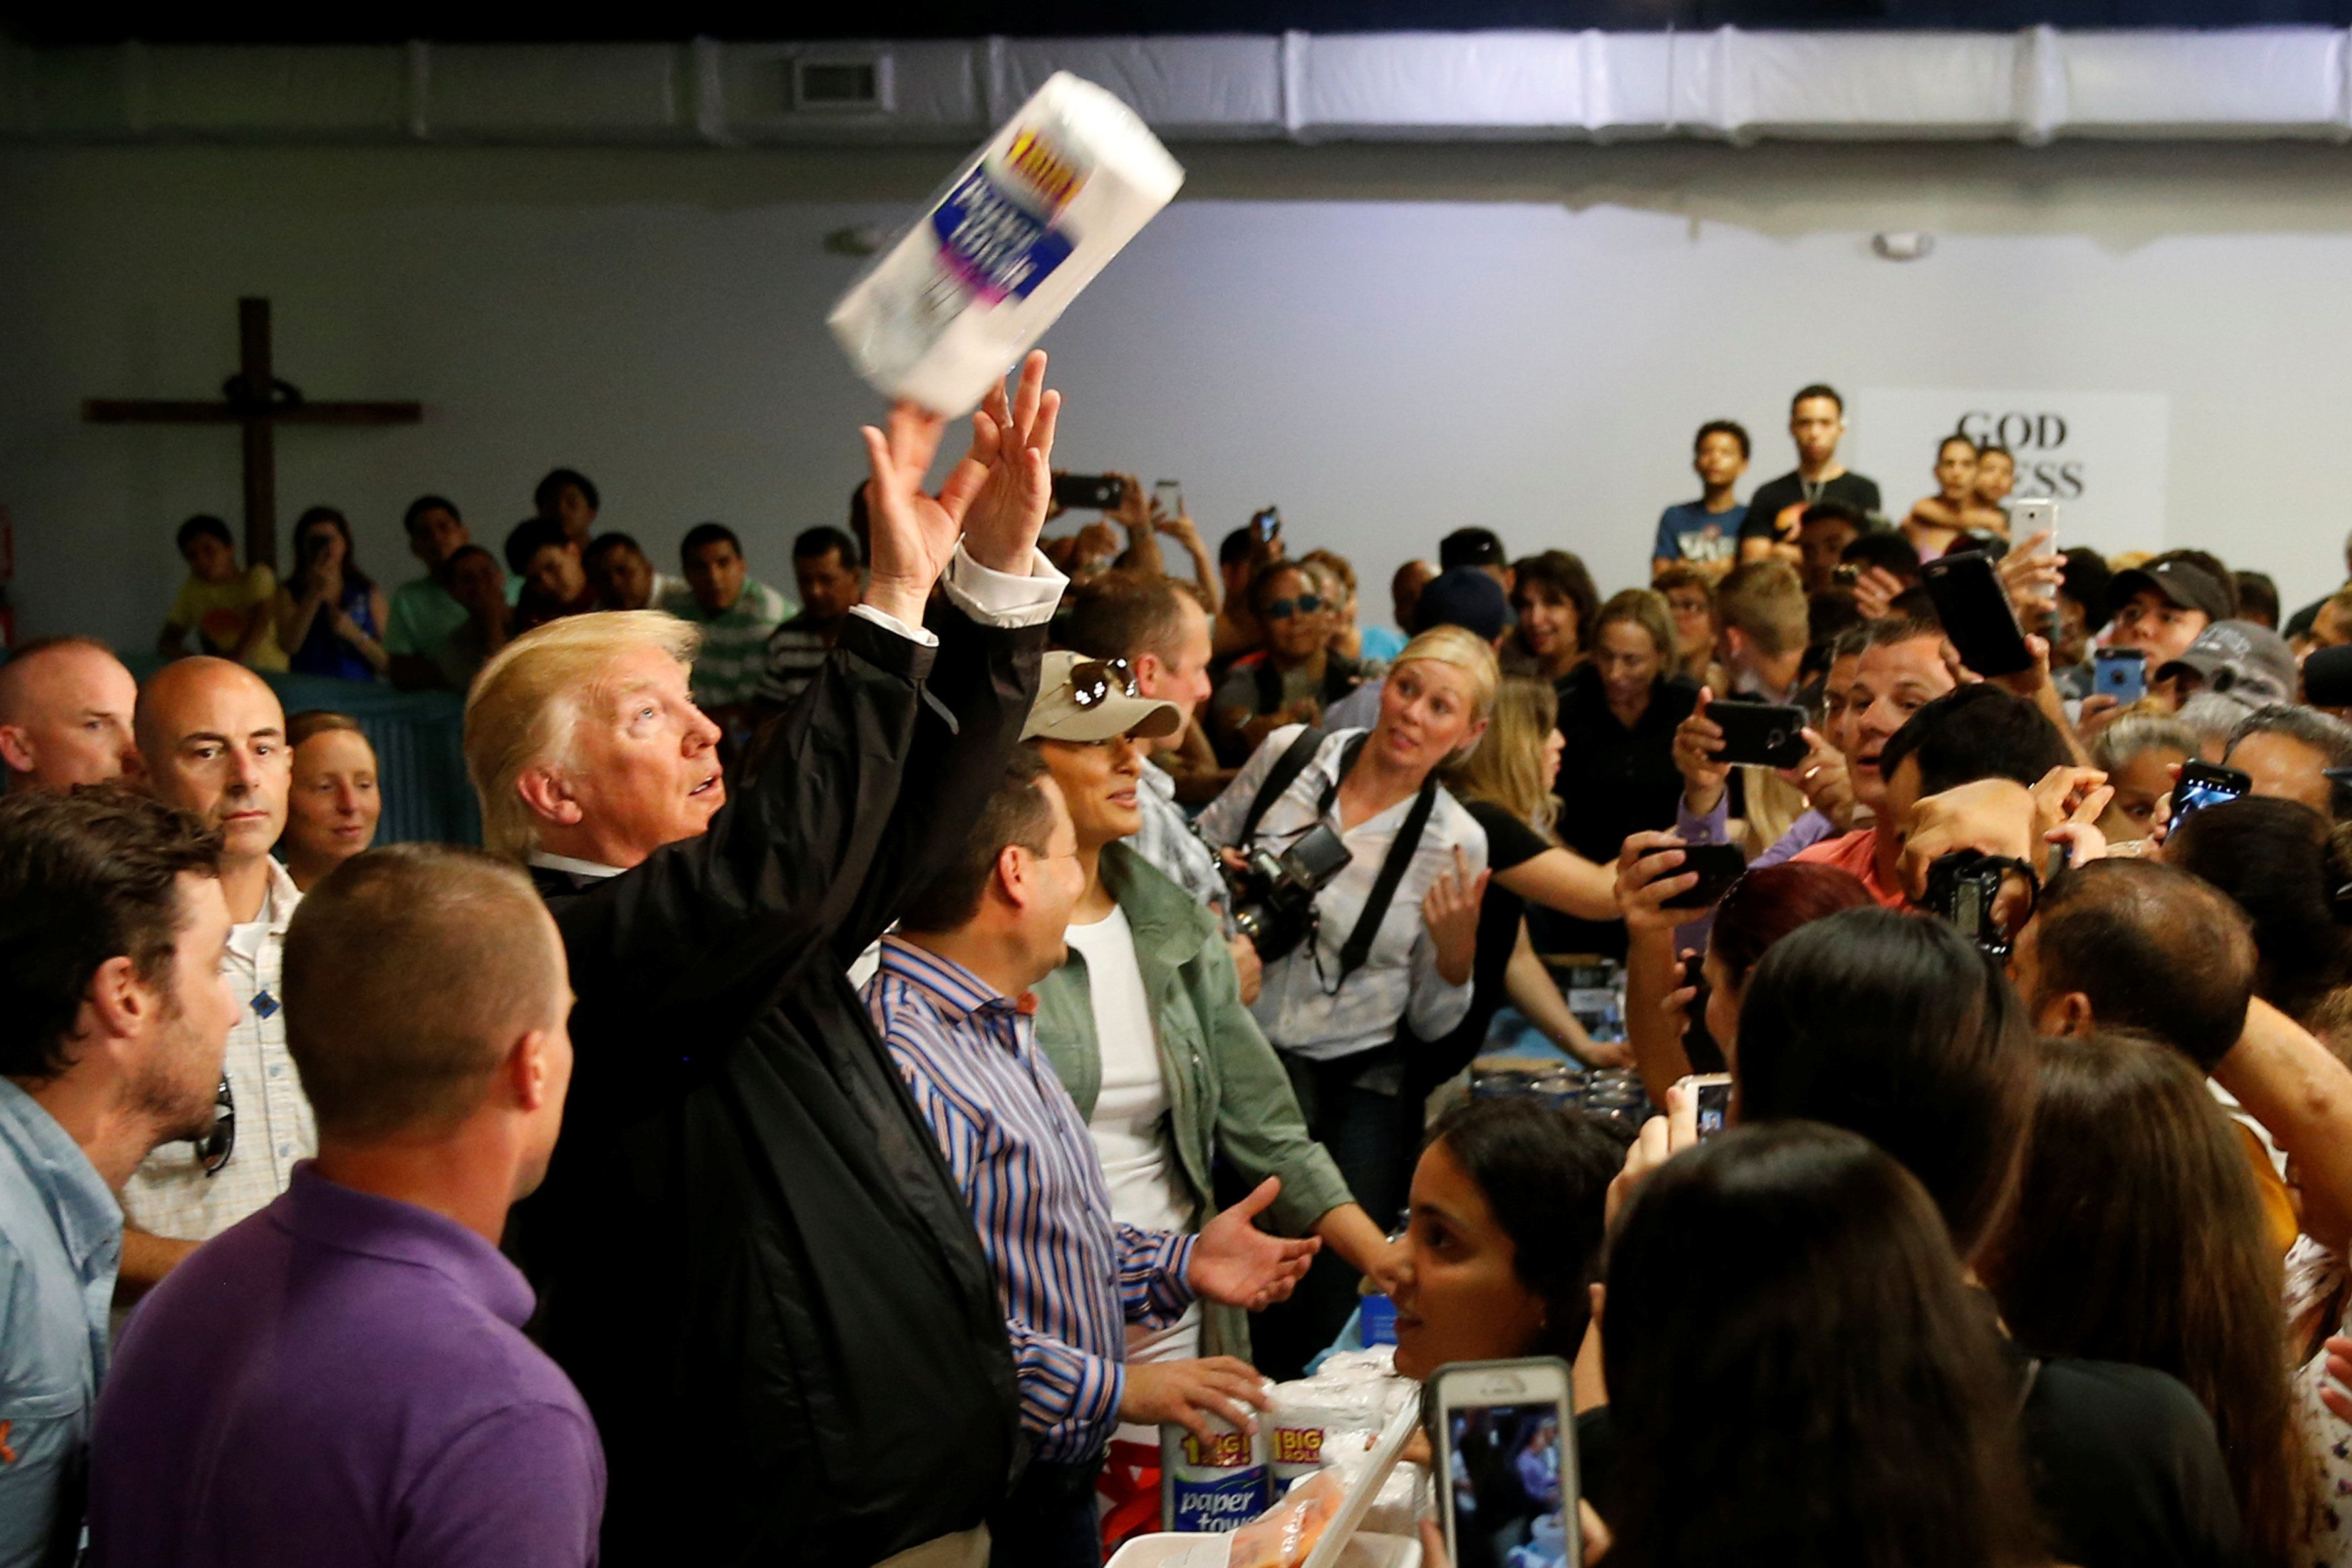 U.S. President Donald Trump tosses rolls of paper towels to people at a hurricane relief distribution center at Calvary Chapel in San Juan, Puerto Rico, October 3, 2017. REUTERS/Jonathan Ernst